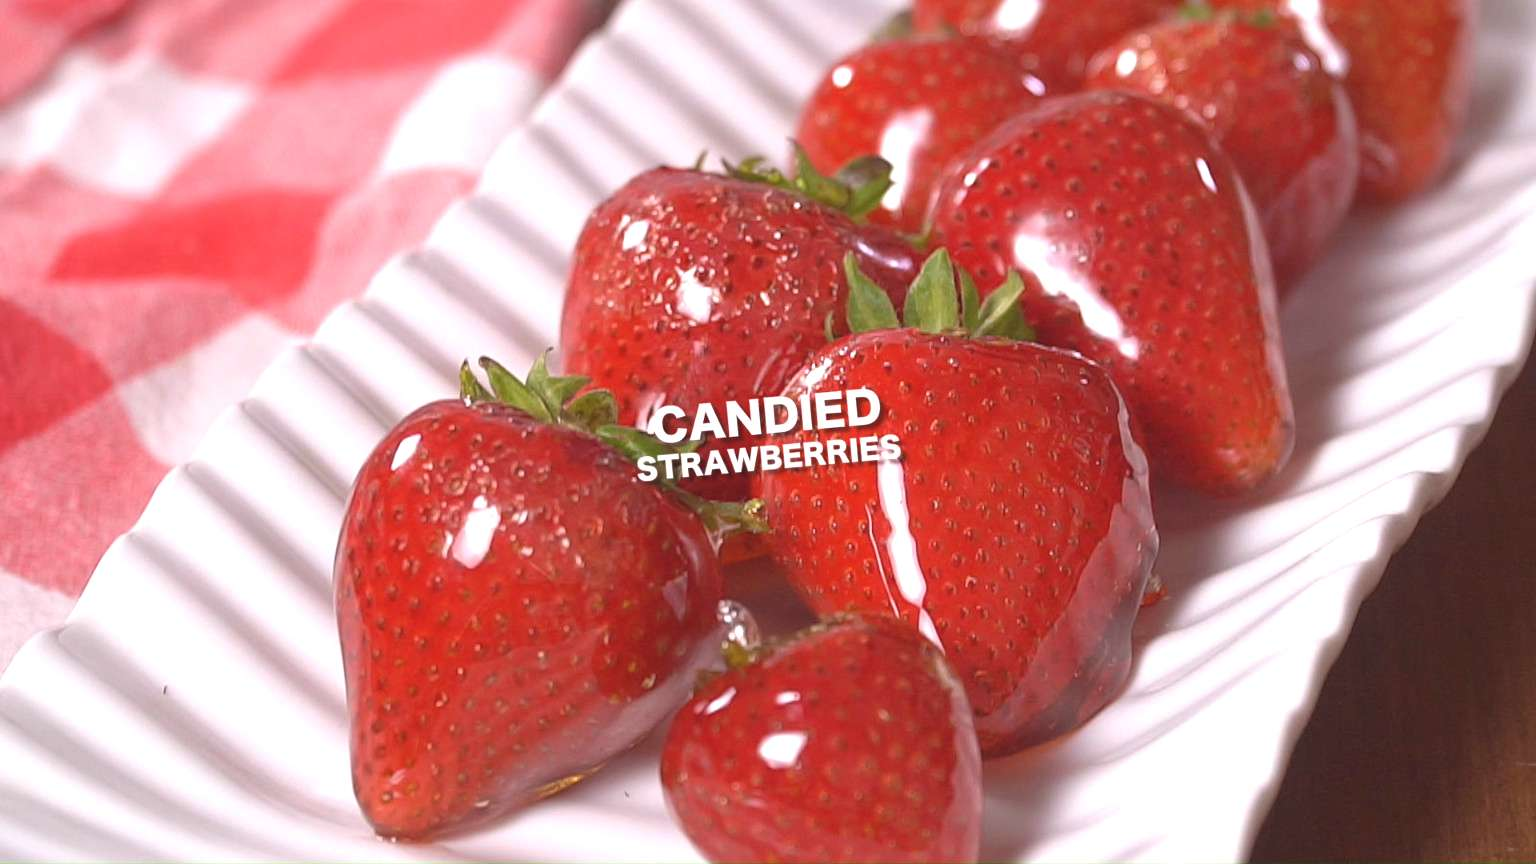 These Candied strawberries are easy to make and a fun unique way to enjoy fresh strawberries. A th